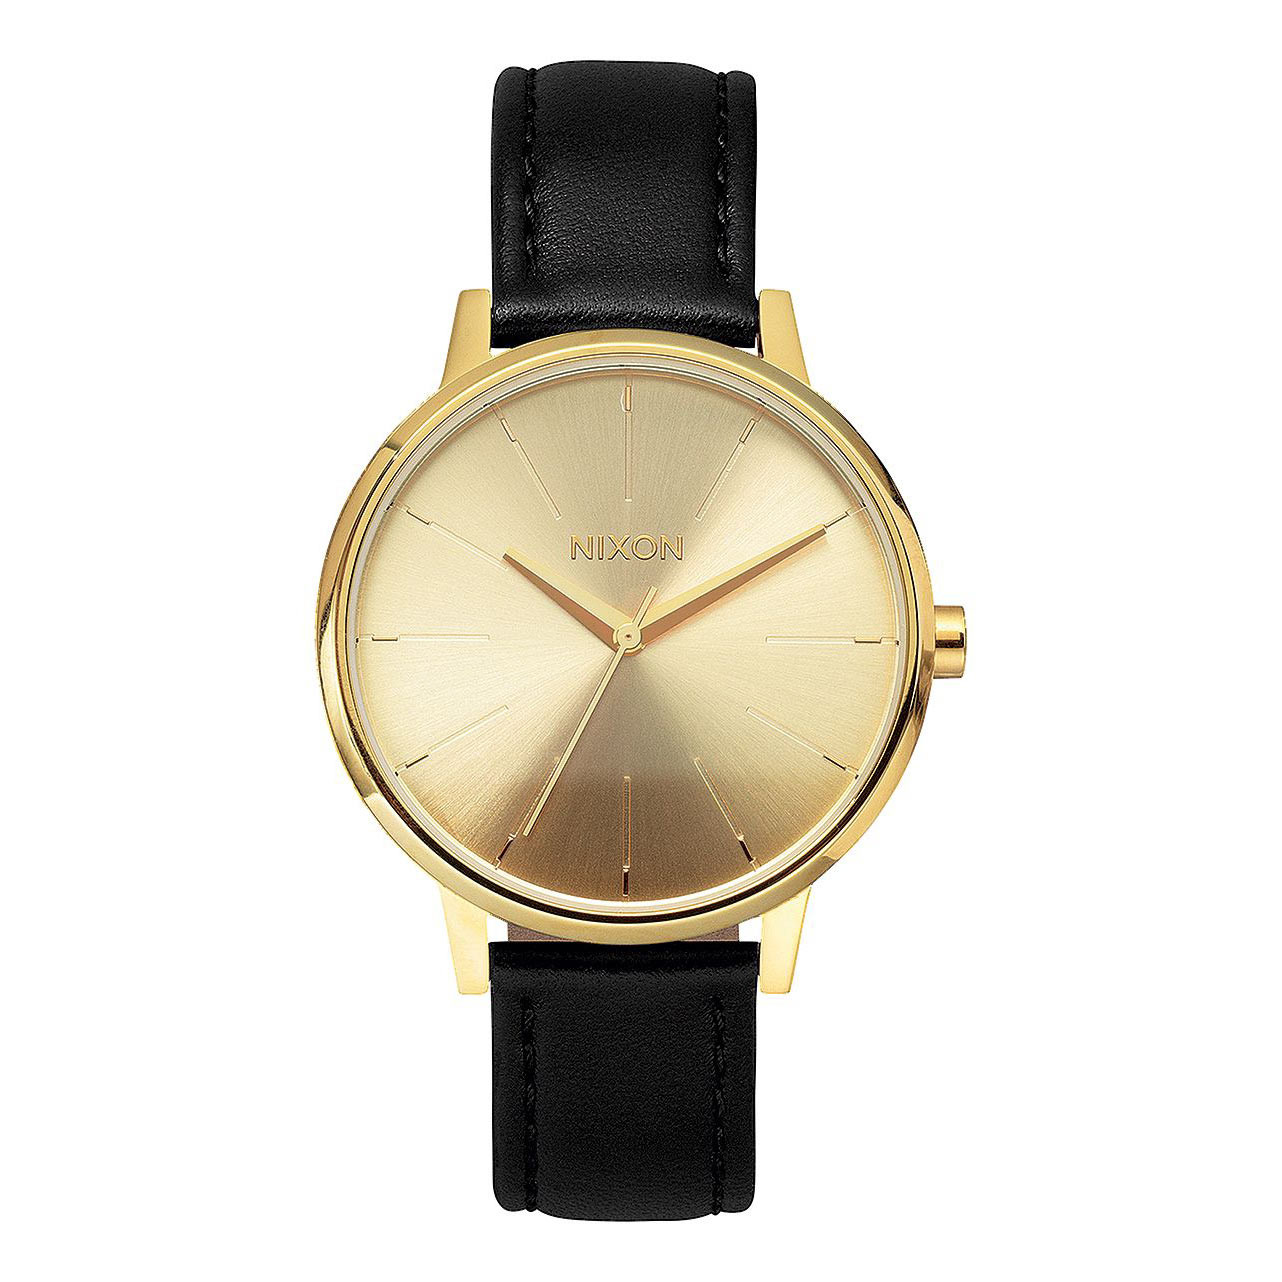 Hodinky Nixon Kensington Leather gold